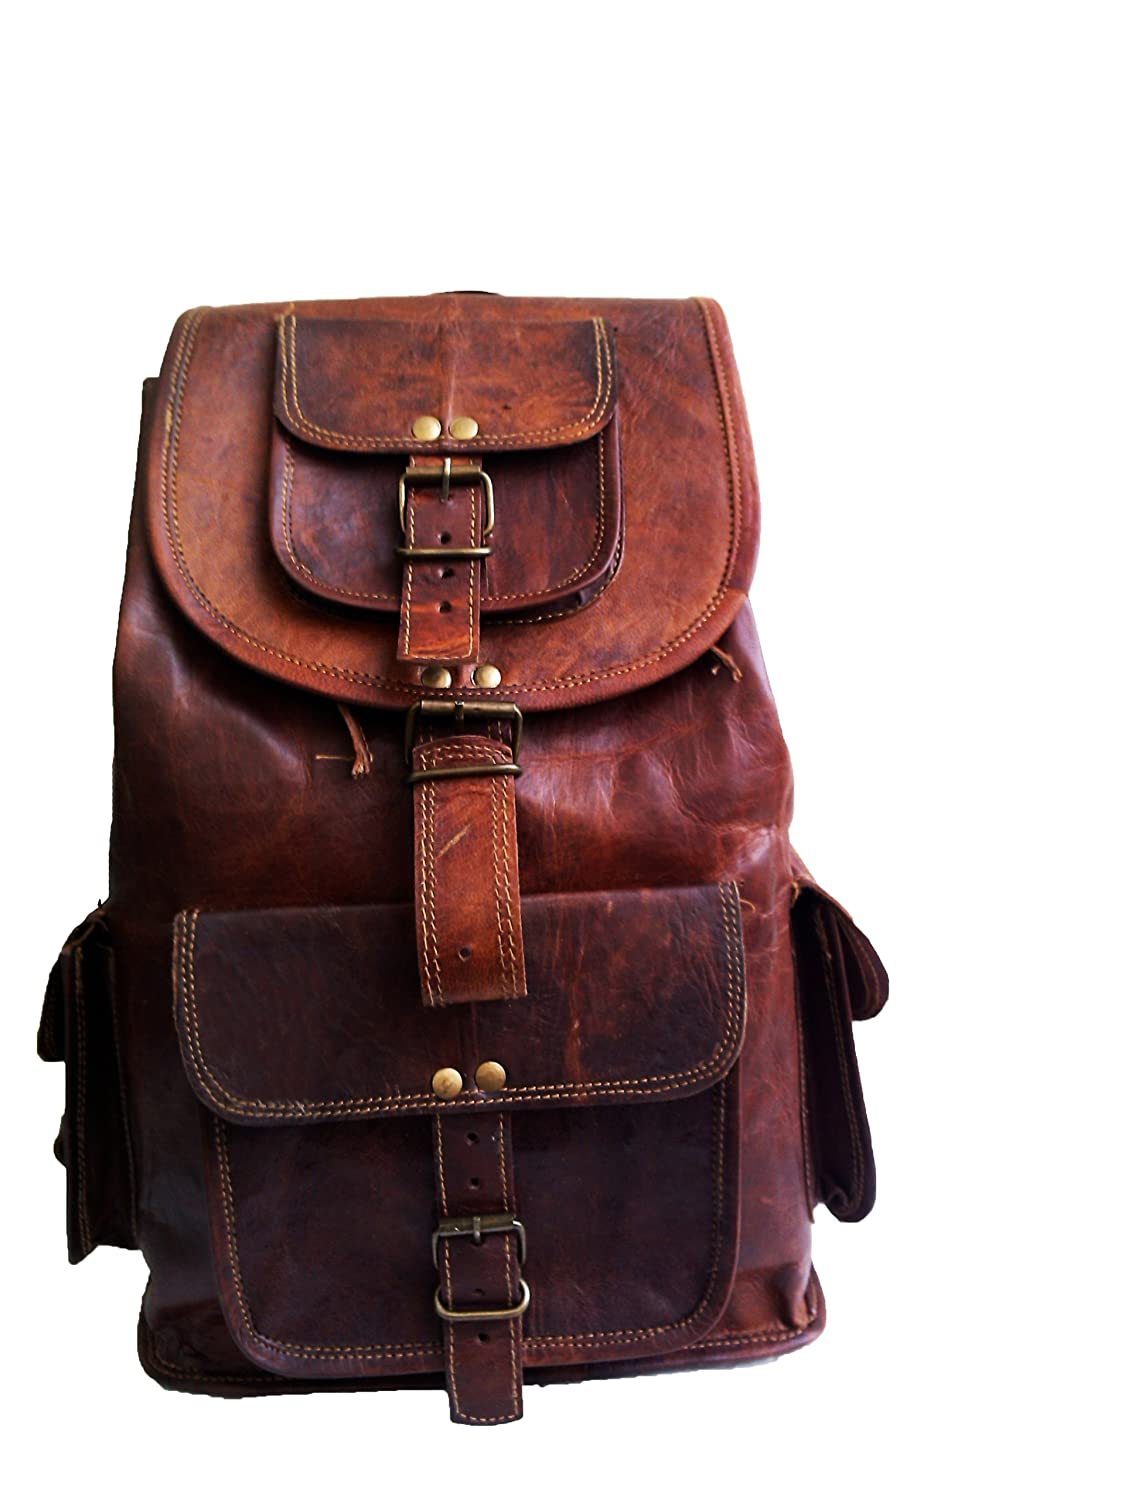 [jaald]jaald 20 Genuine Leather Retro Rucksack Backpack College Bag,school Picnic Bag Travel 66hht [並行輸入品]   B00NAP2IL6